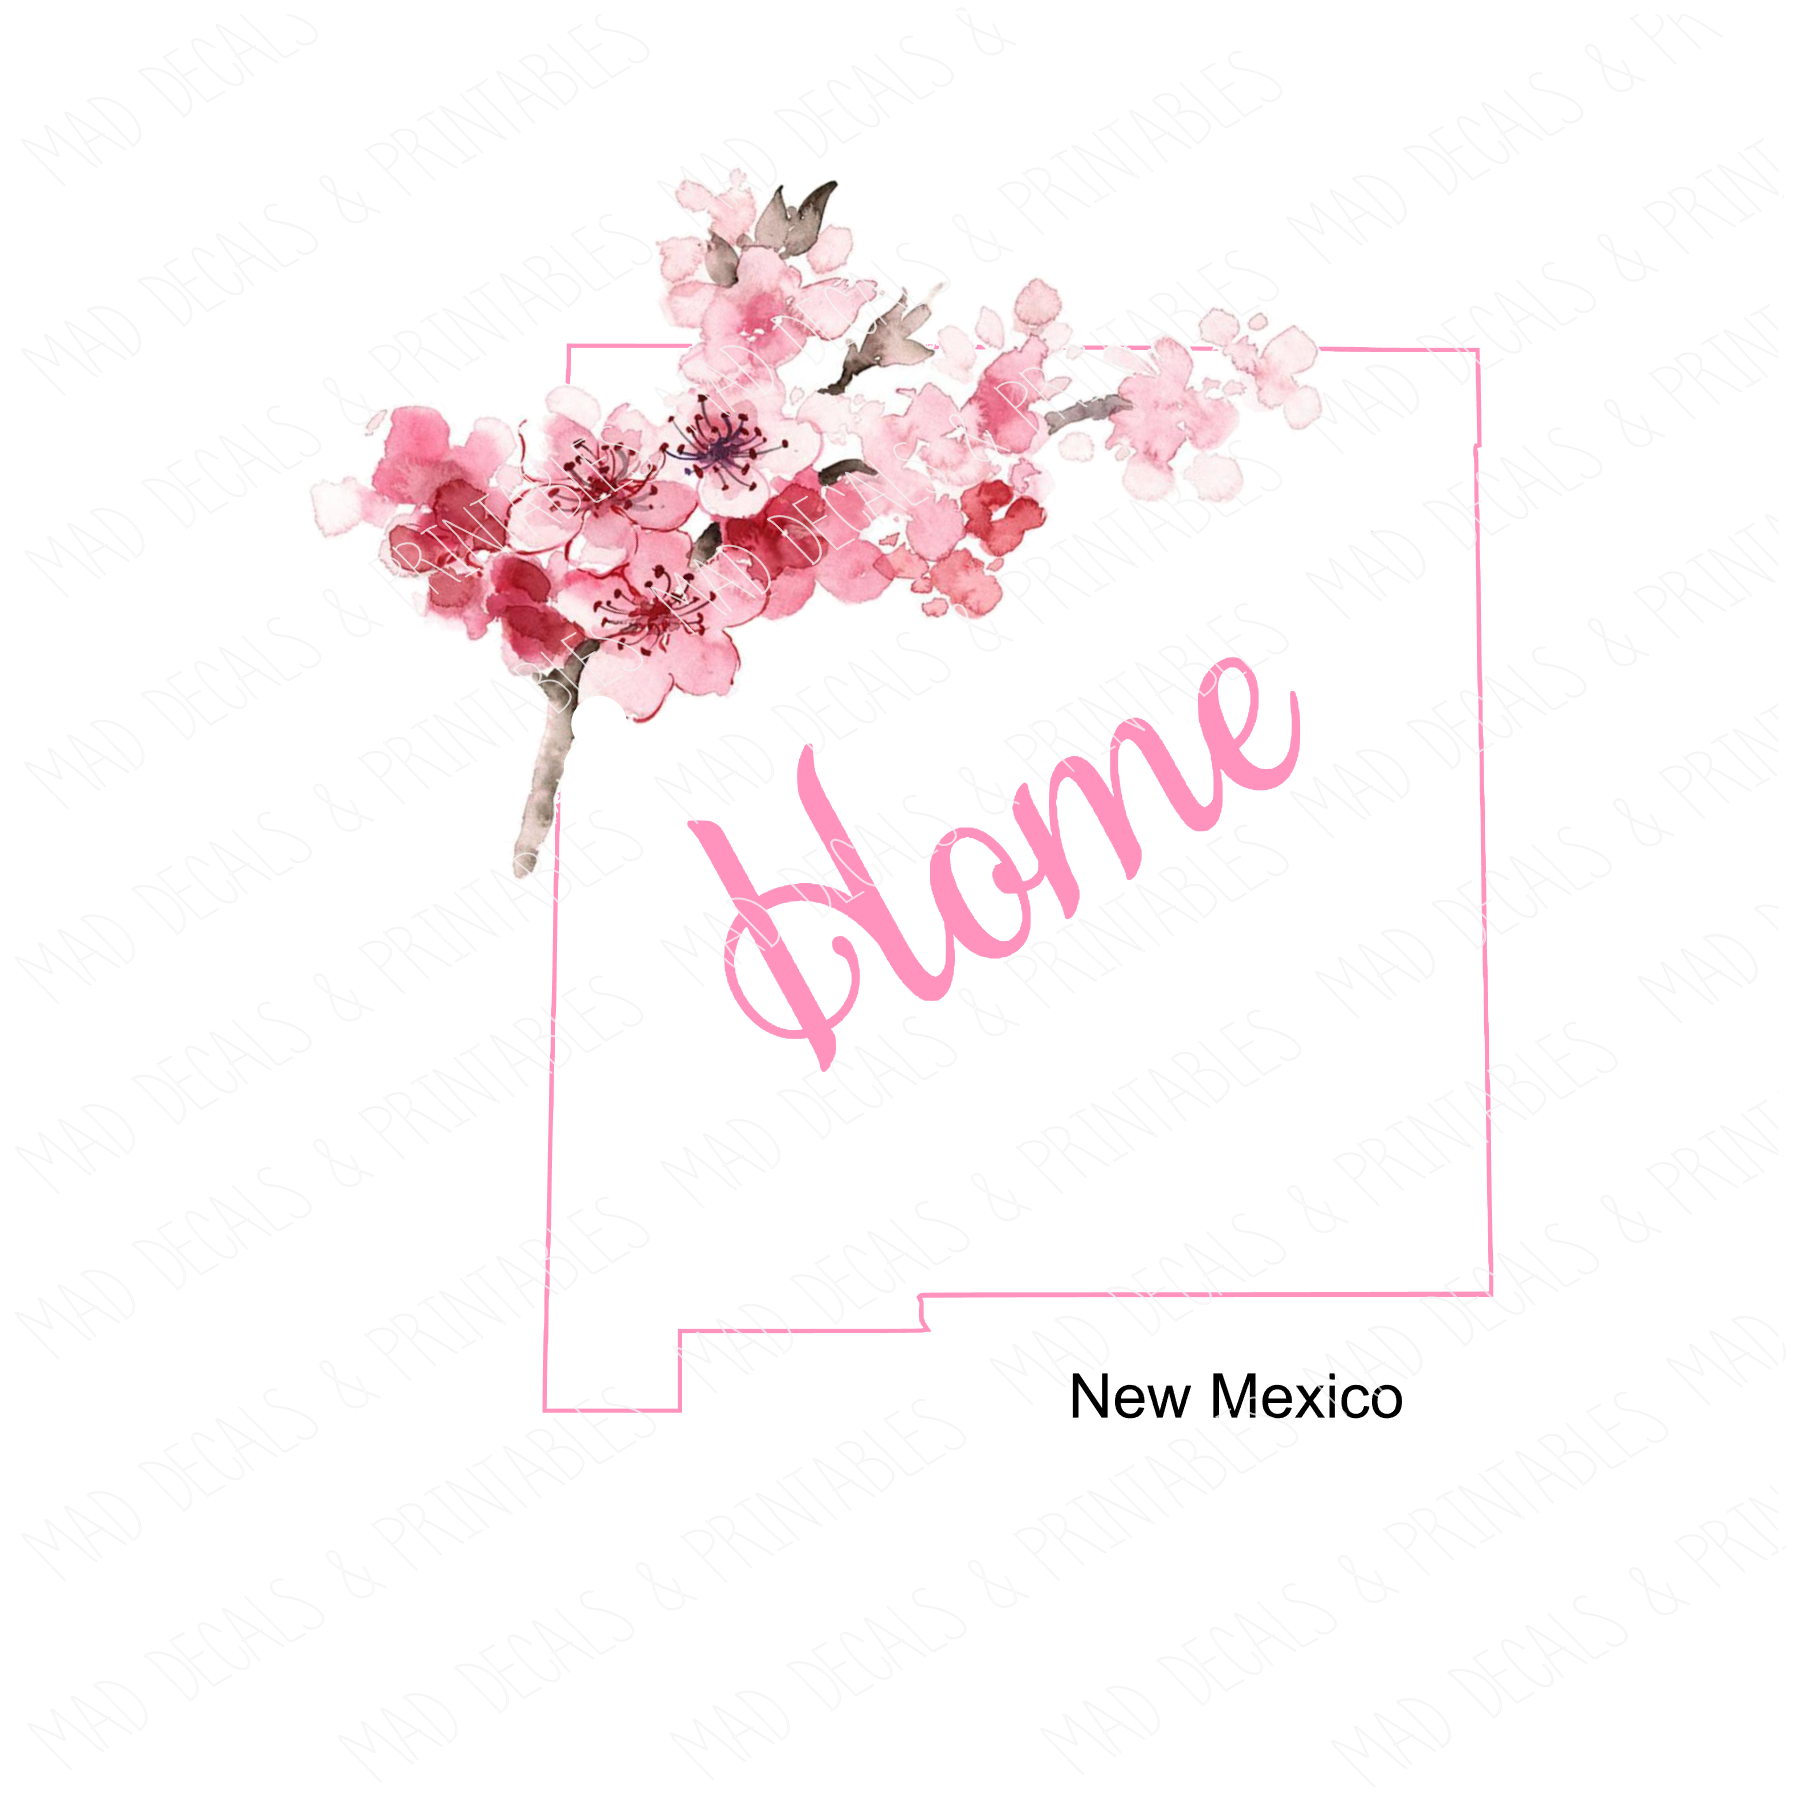 New Mexico-Digital Download